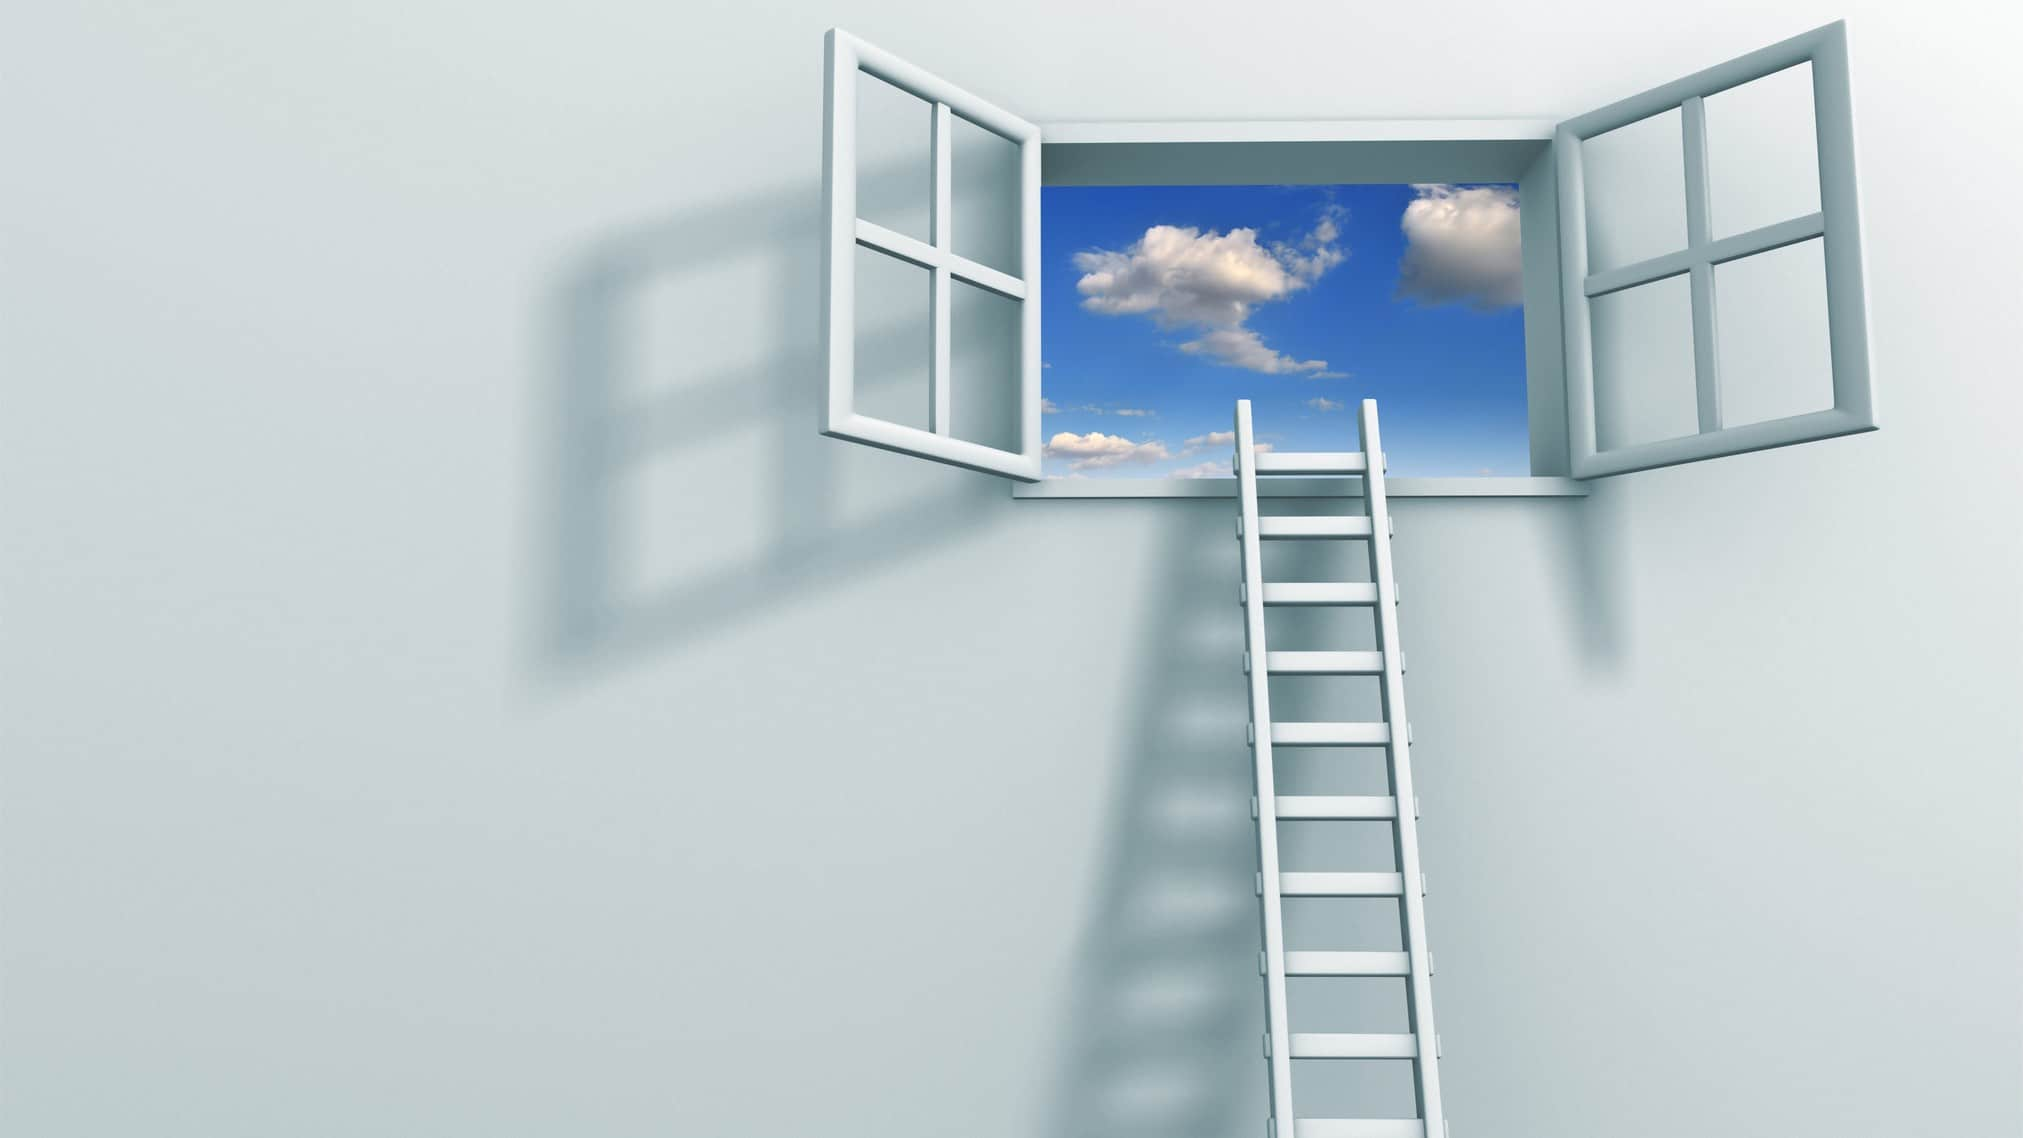 ladder leading up to open window representing buying opportunity for asx shares